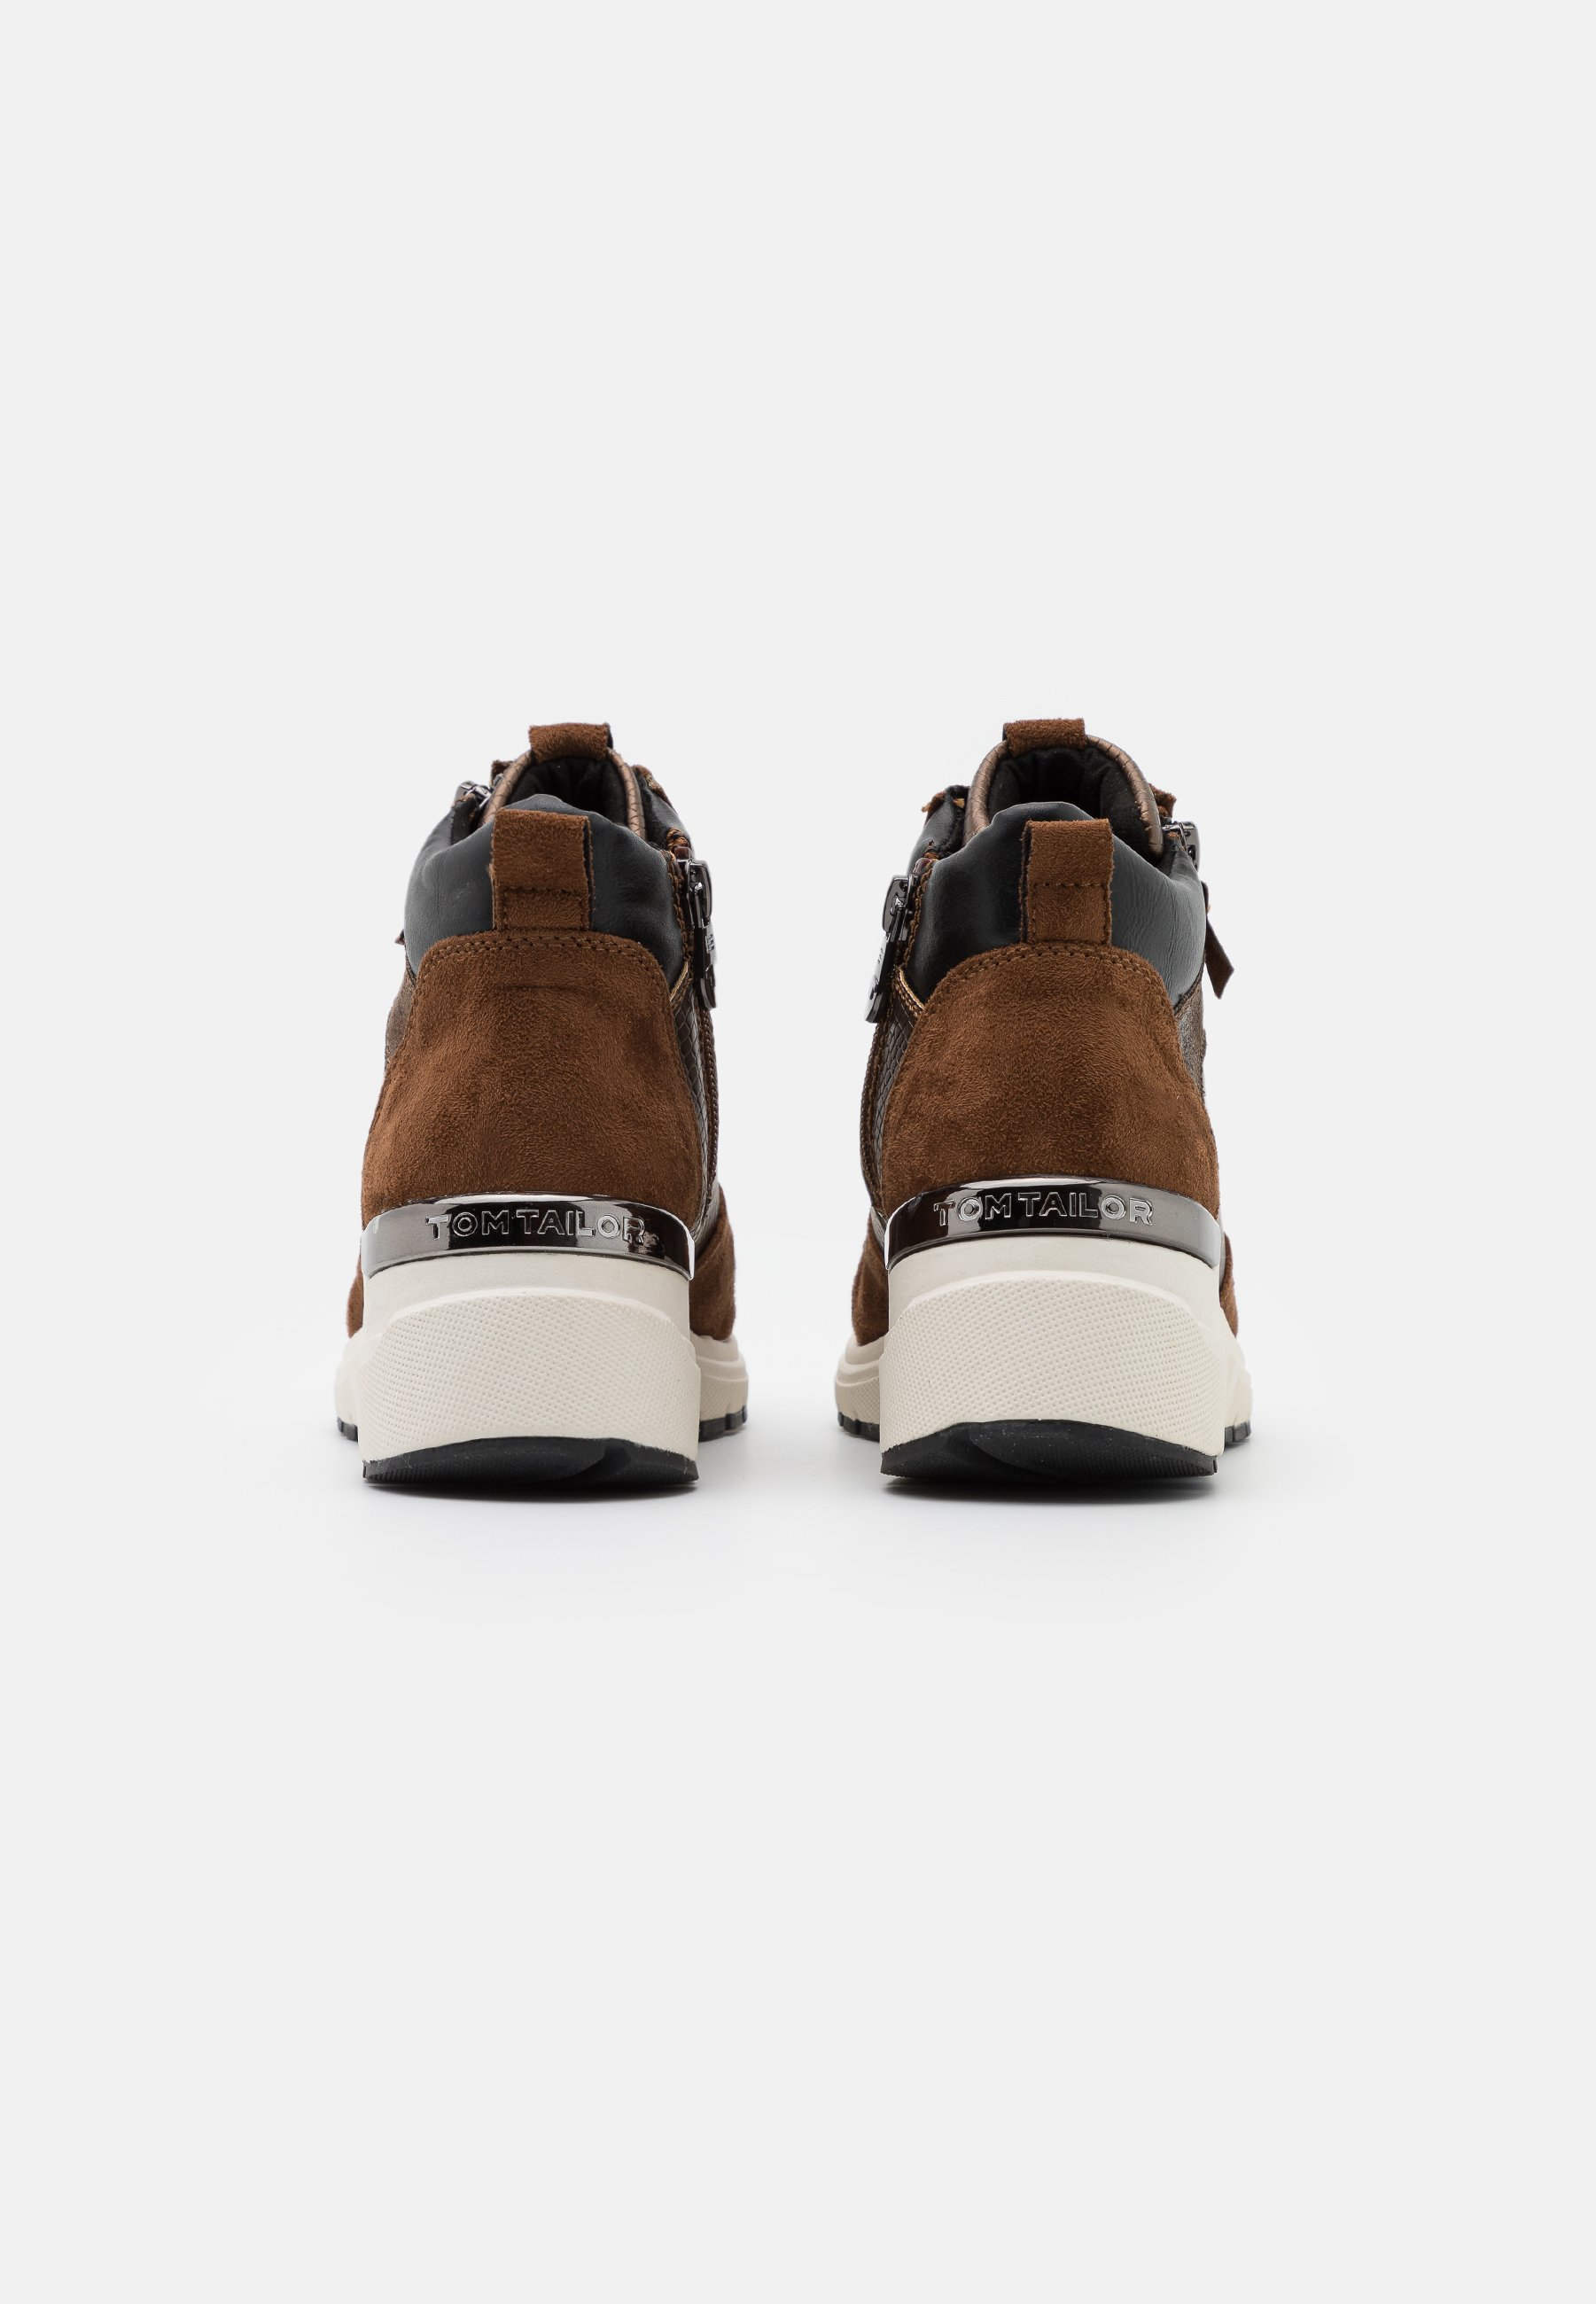 Tom Tailor Sneaker High - Brown/braun